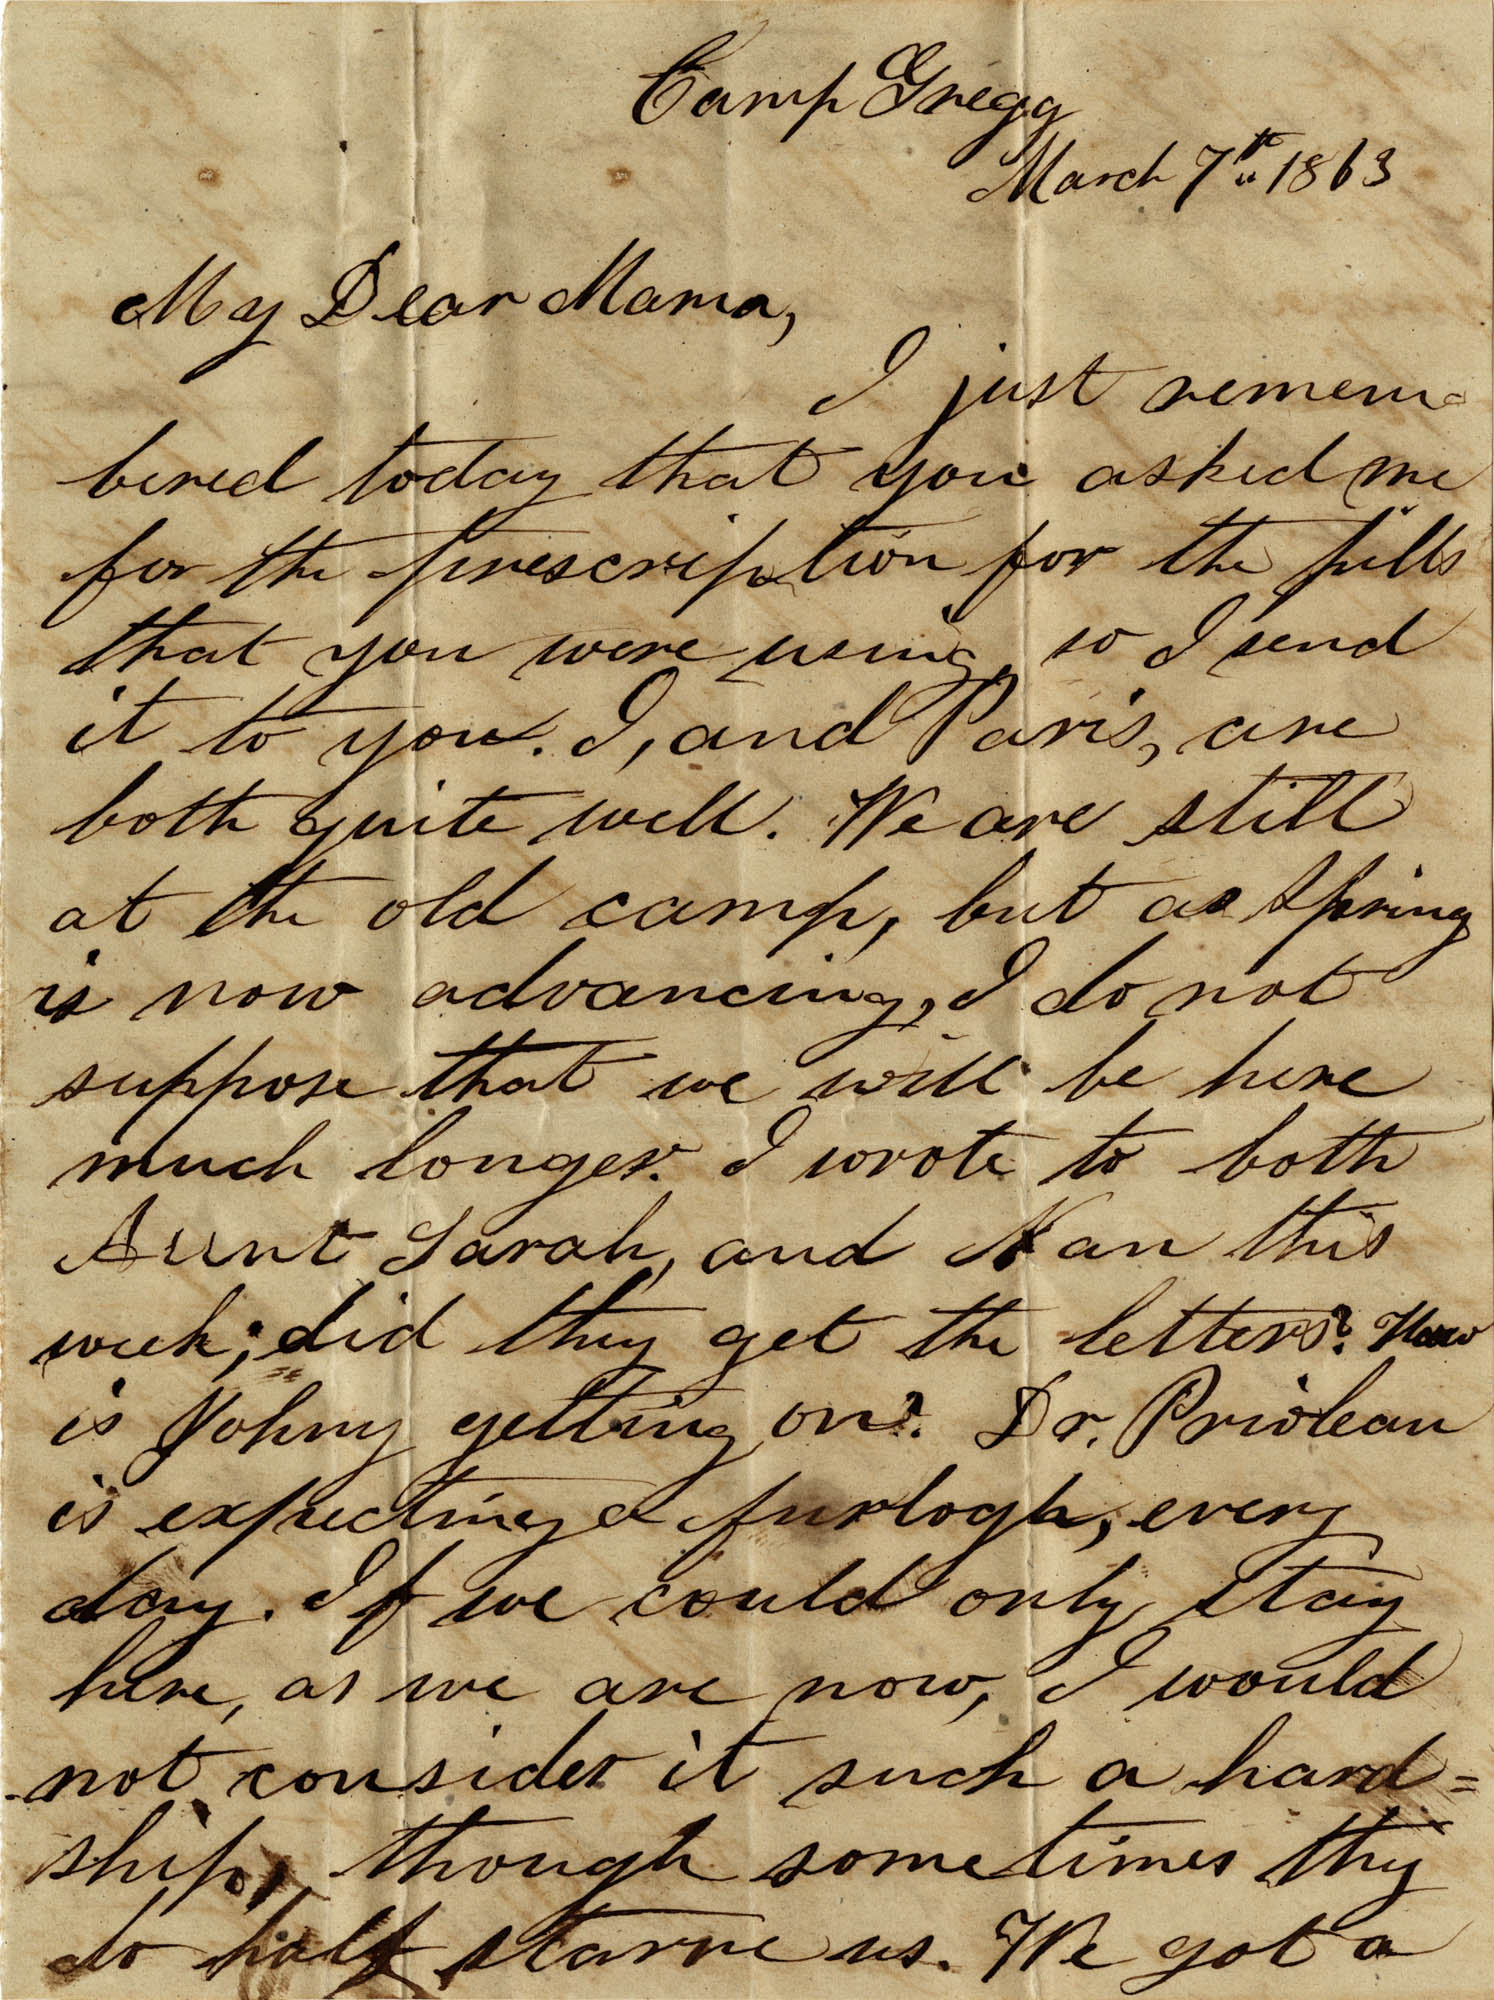 076. Willis Keith to Anna Bell Keith -- Mar. 07, 1863